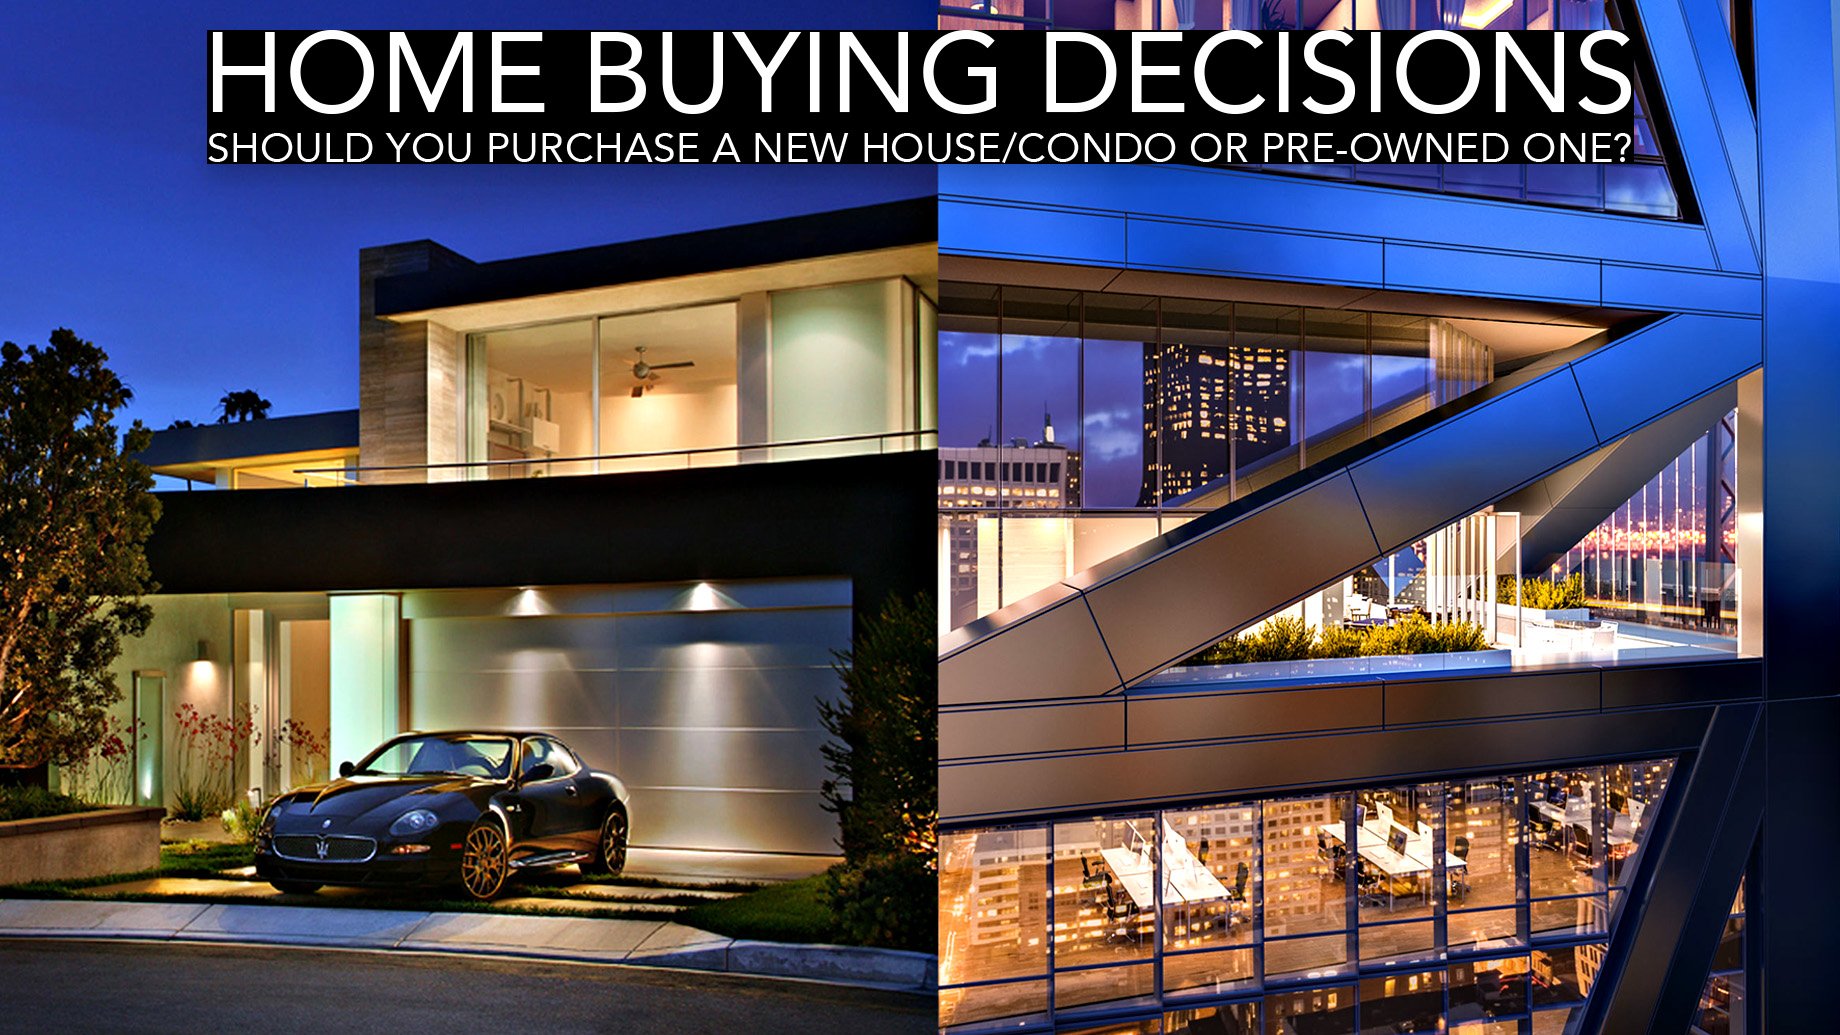 Home Buying Decisions - Should You Purchase a New House/Condo or Pre-Owned One?